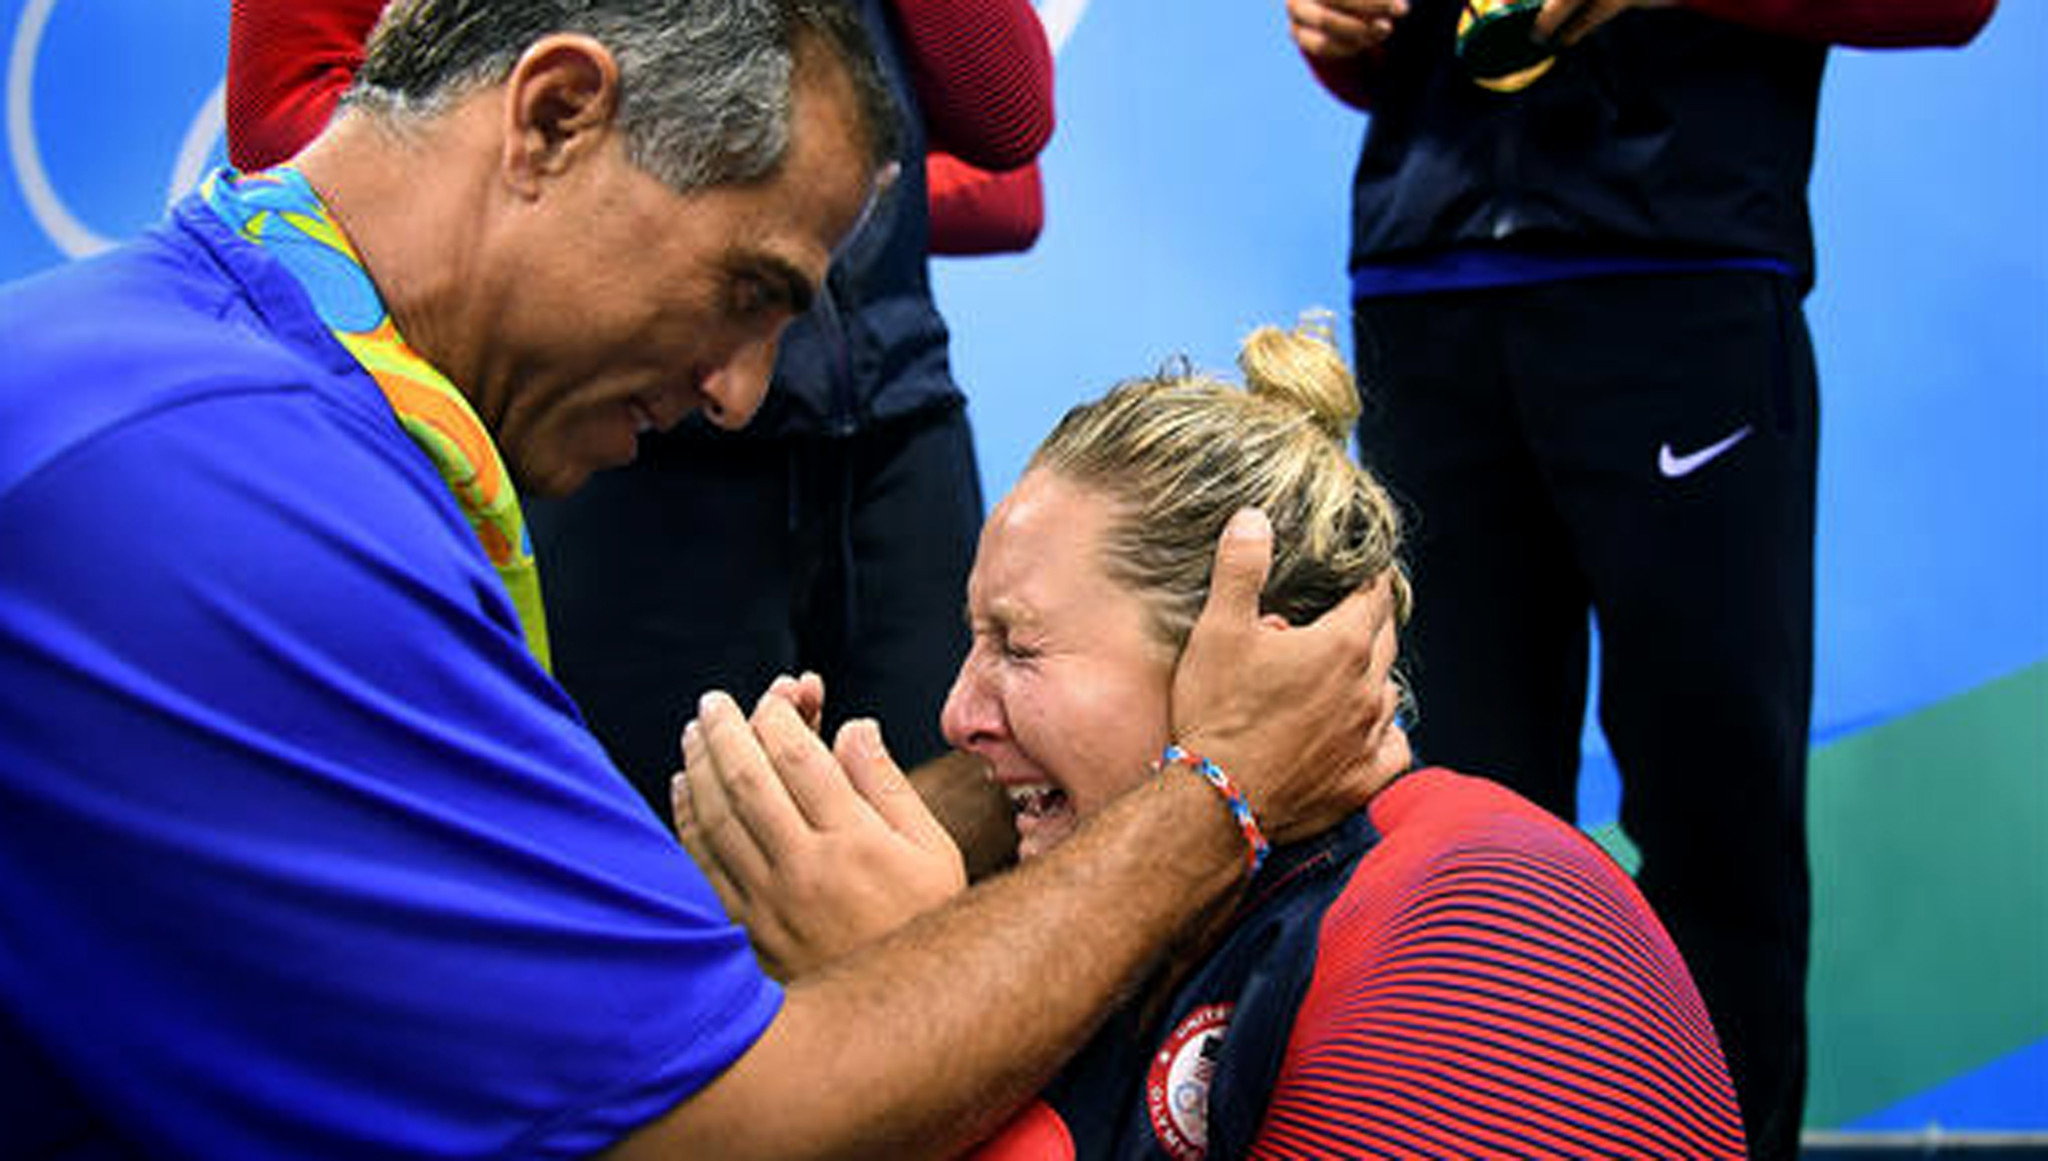 Summer Olympics  The U S  dominates Rio Games with     medals     Los Angeles Times